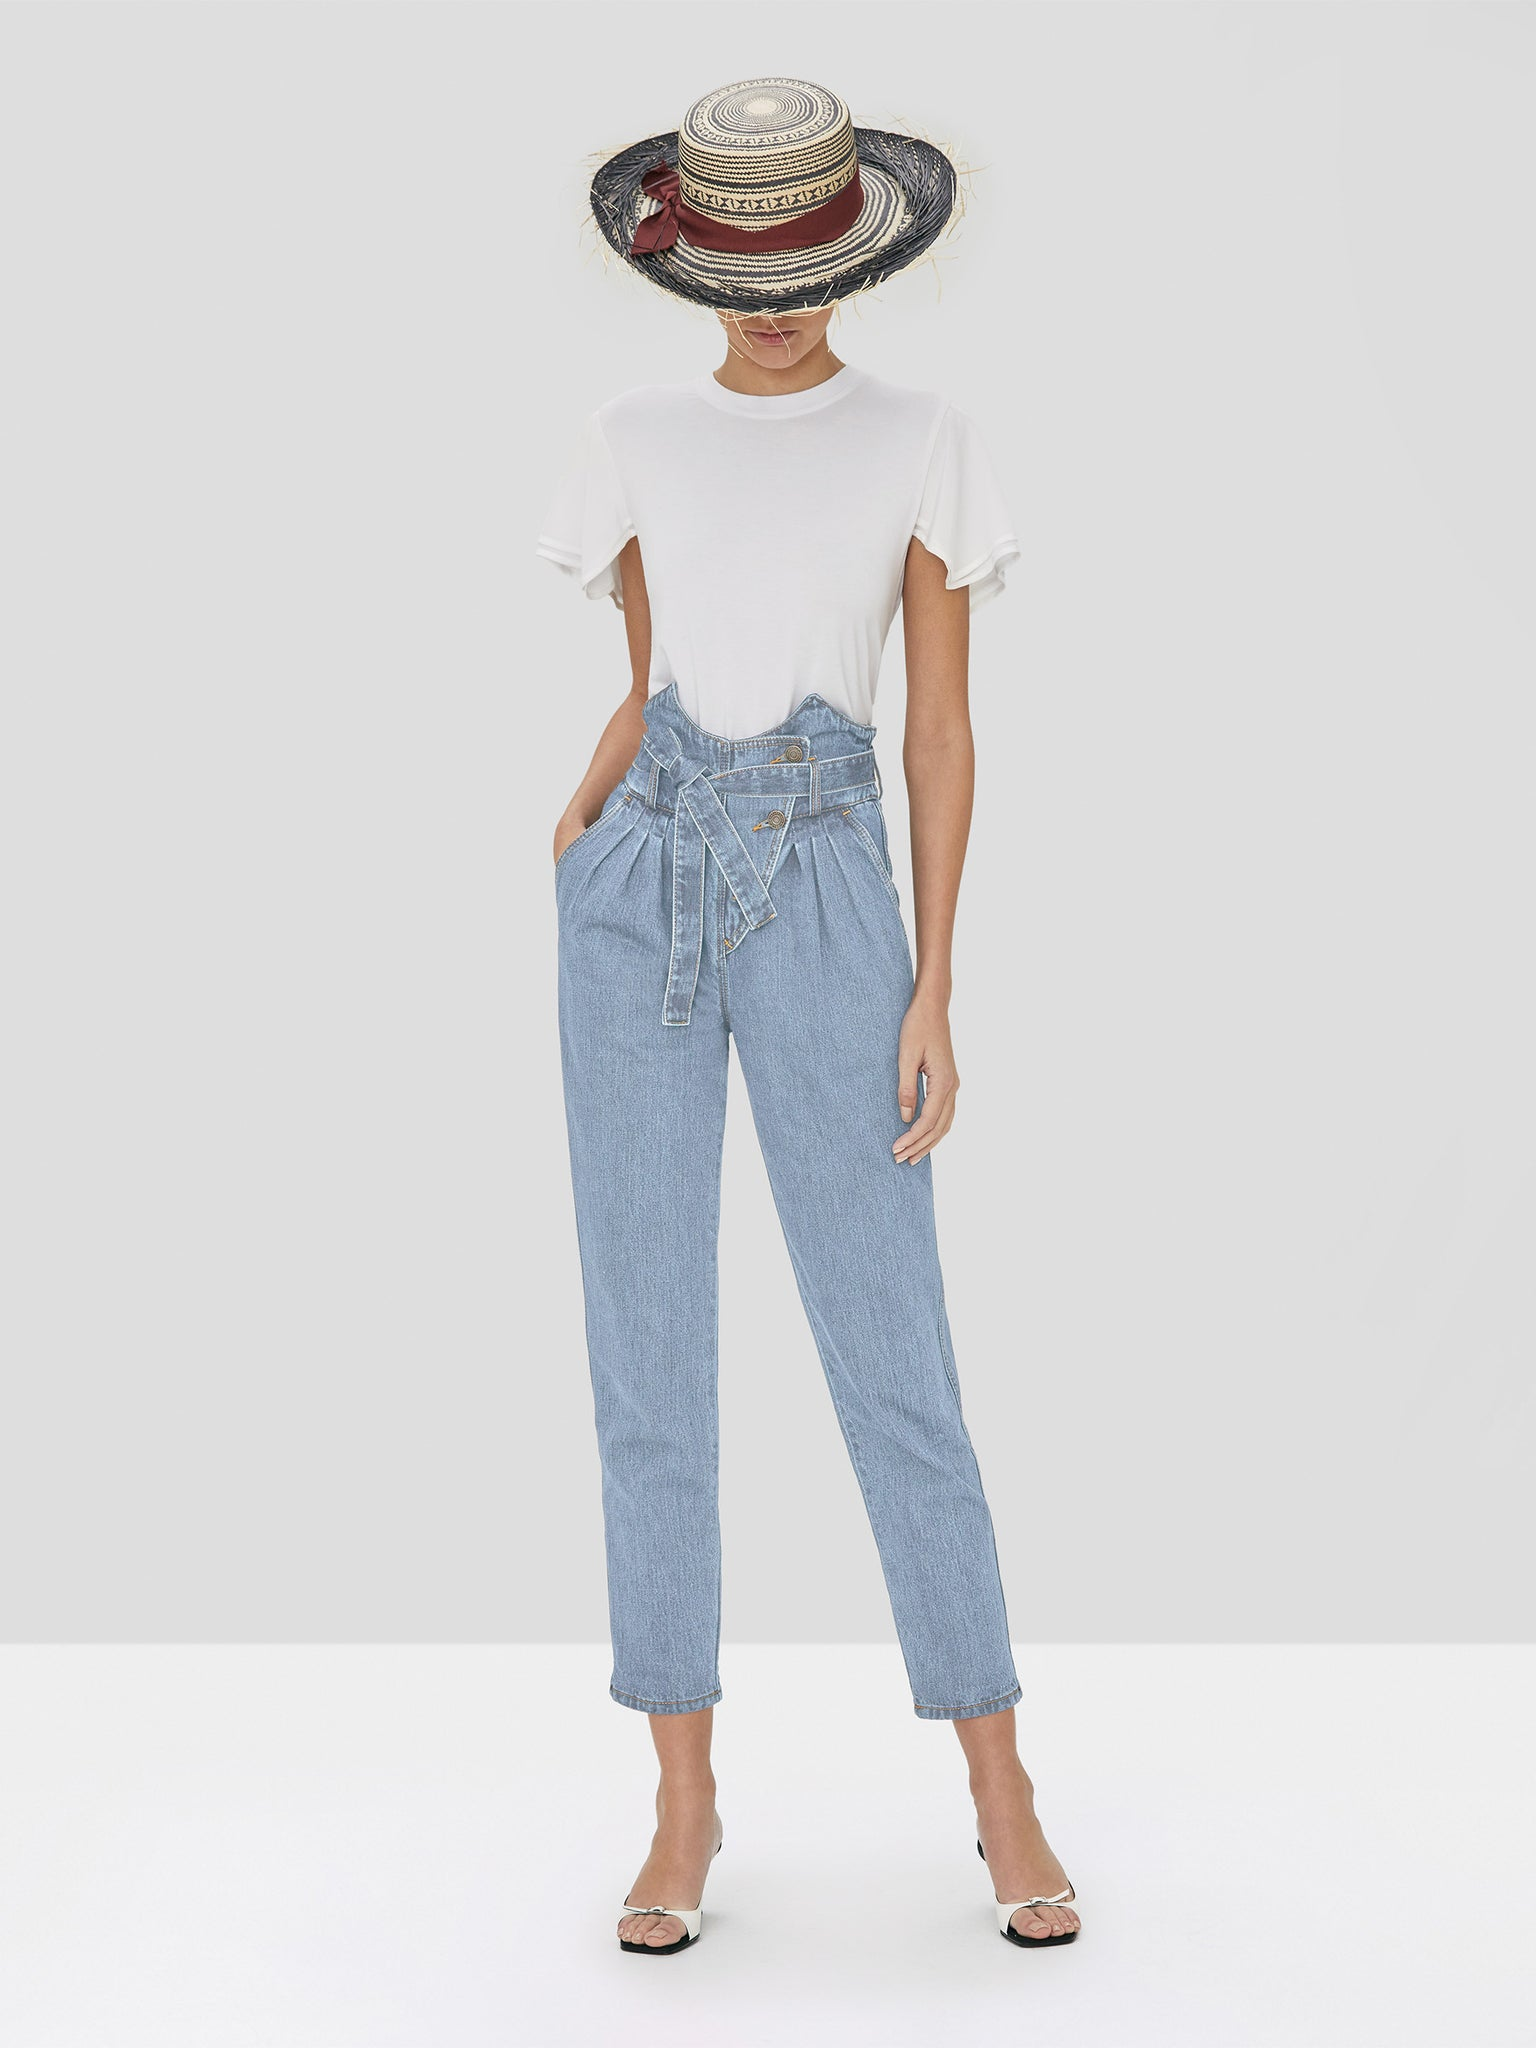 Alexis Stannis Pant in Light Denim and Ronson Top in White from the Spring Summer 2020 Collection